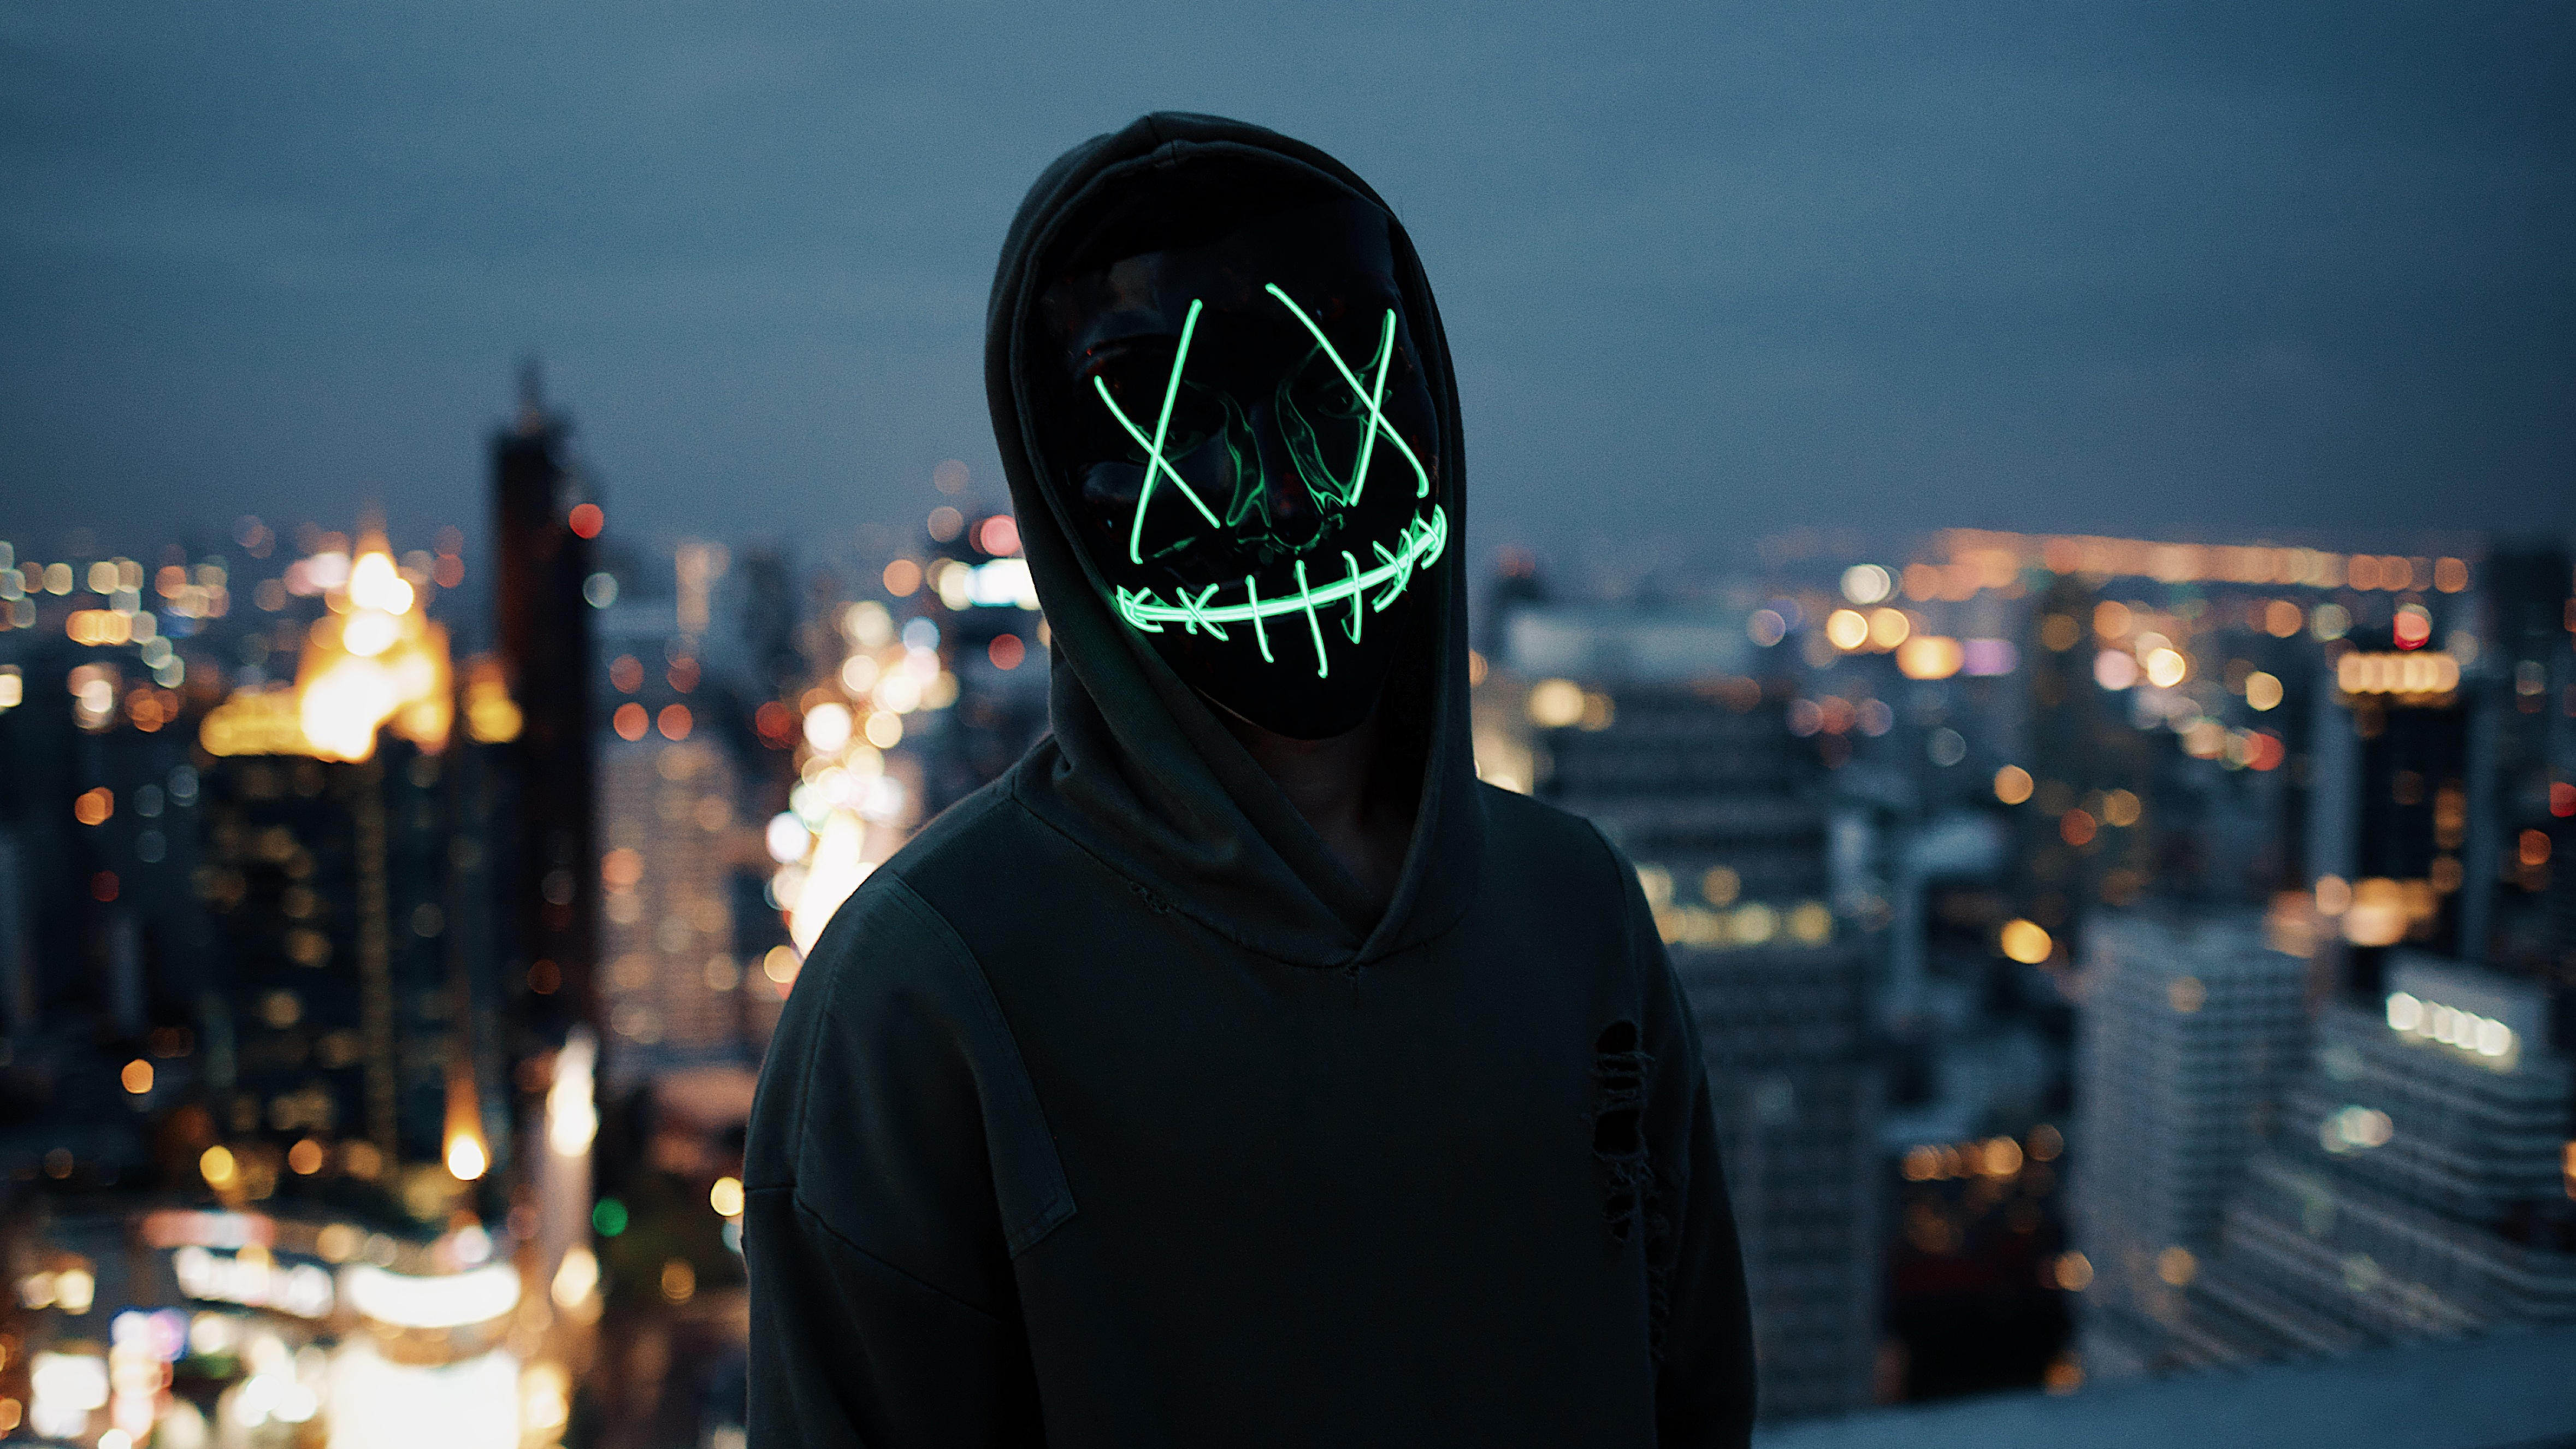 Mask Guy Neon 5k, HD Photography, 4k Wallpapers, Images ...